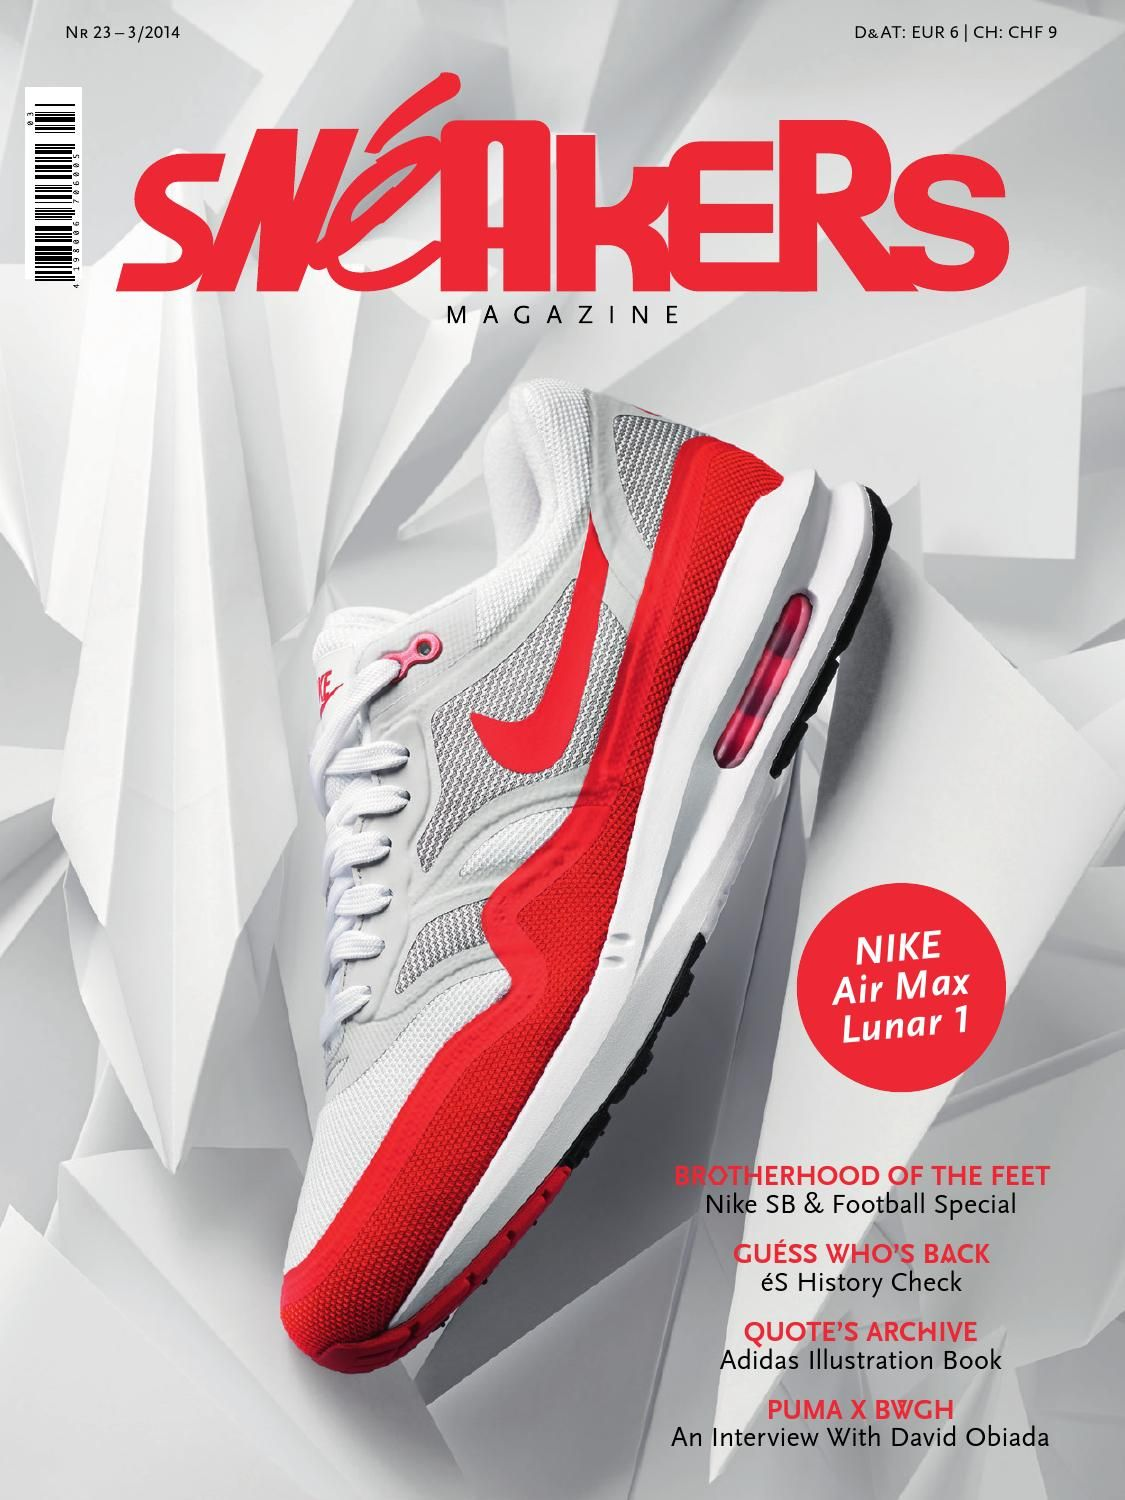 newest 115c0 f8bd5 ... An interview with founder David Obiada - Air Max Lunar 1 Cover Story -  Quote s Archive - éS History Check - Nike SB   Football Special ... and  much more